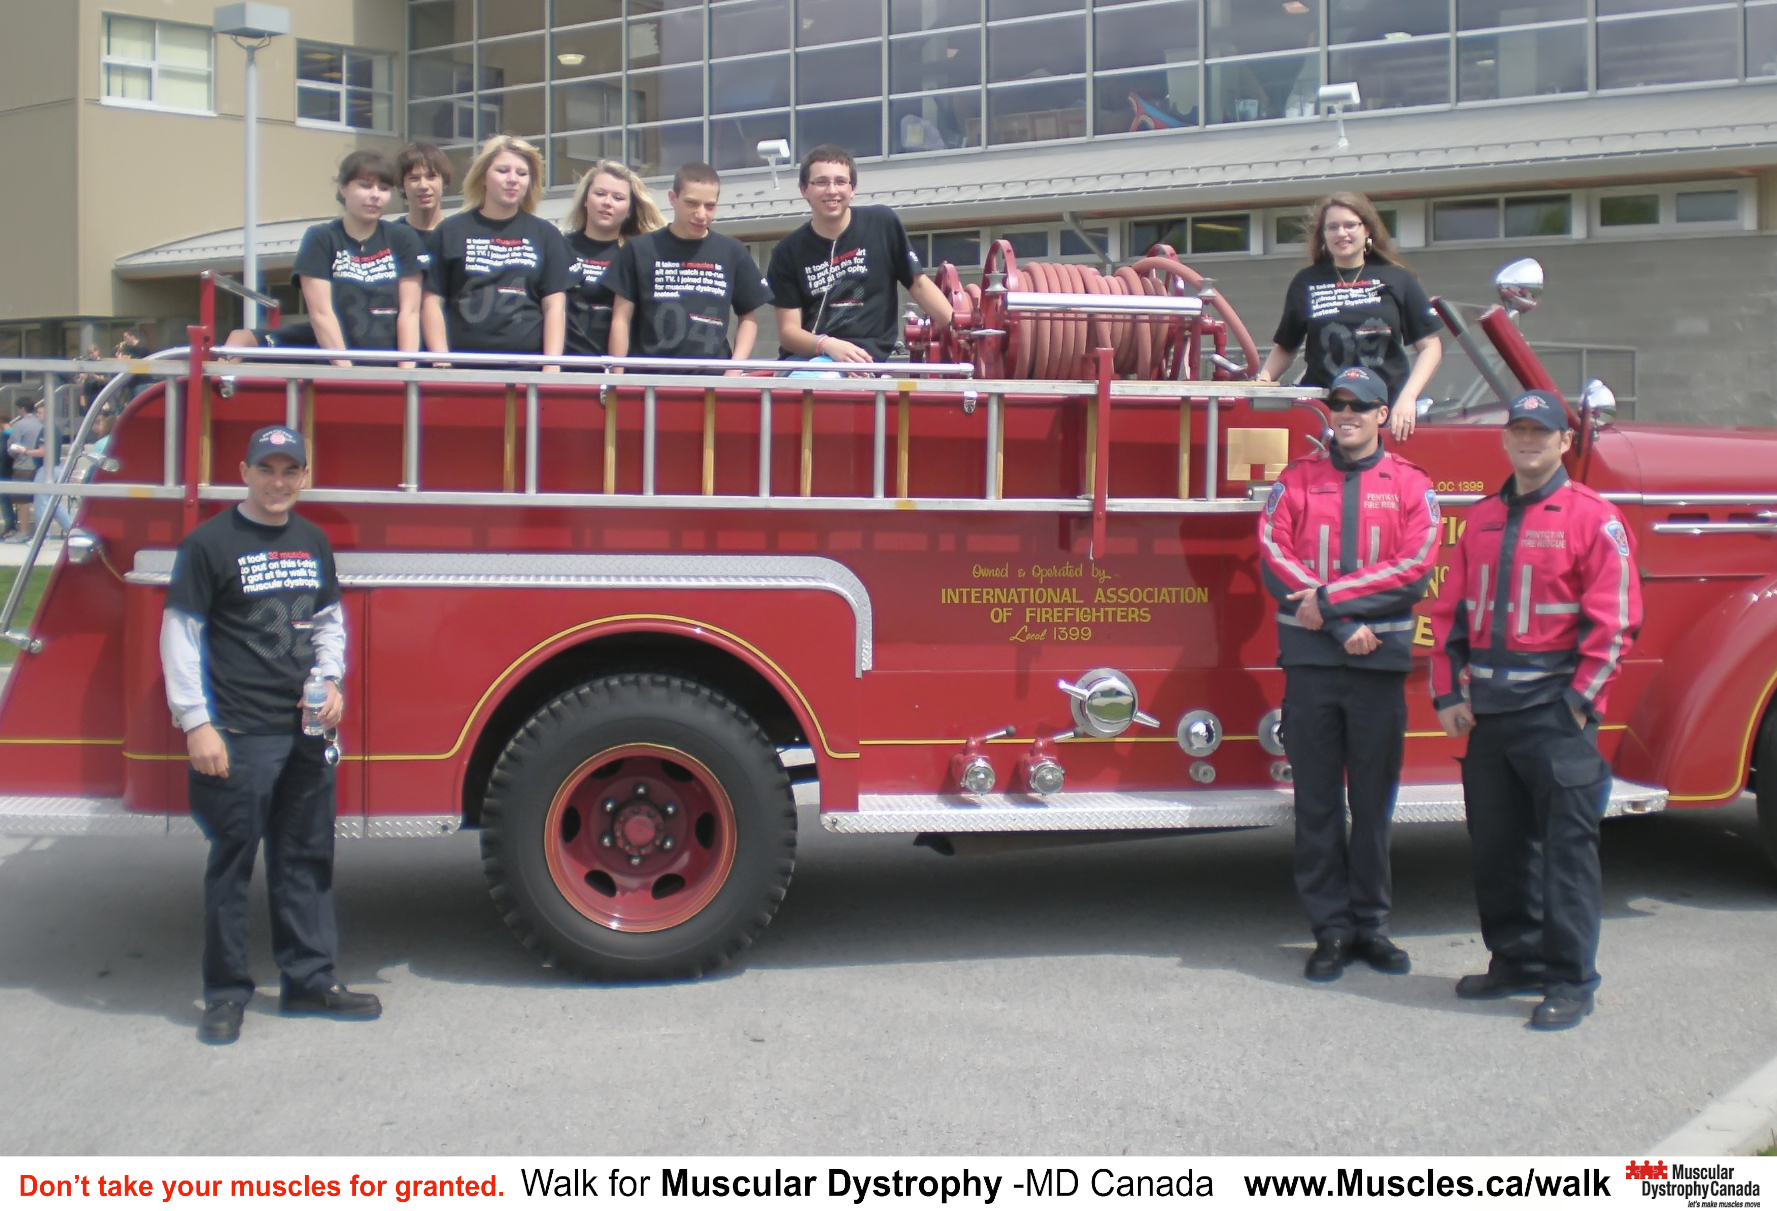 12.6 Firefighters fundraise for muscular dystrophy